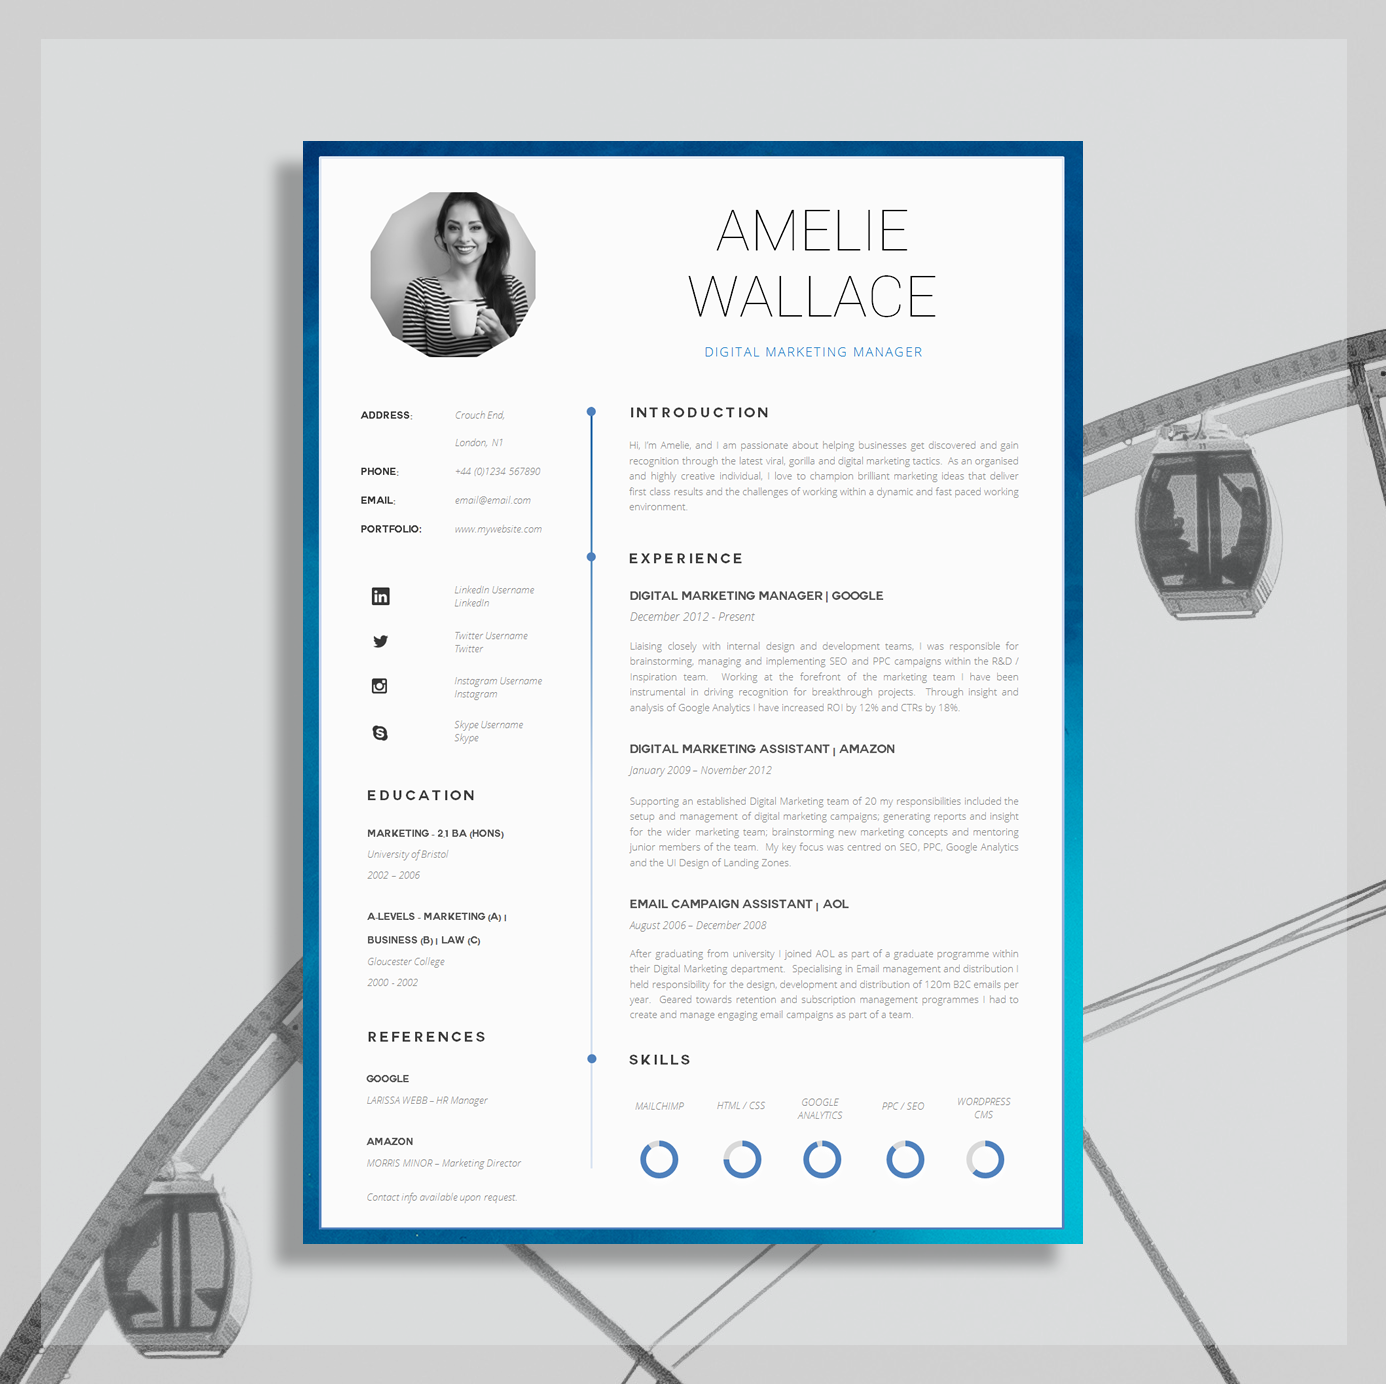 Download this Creative Resume Here.